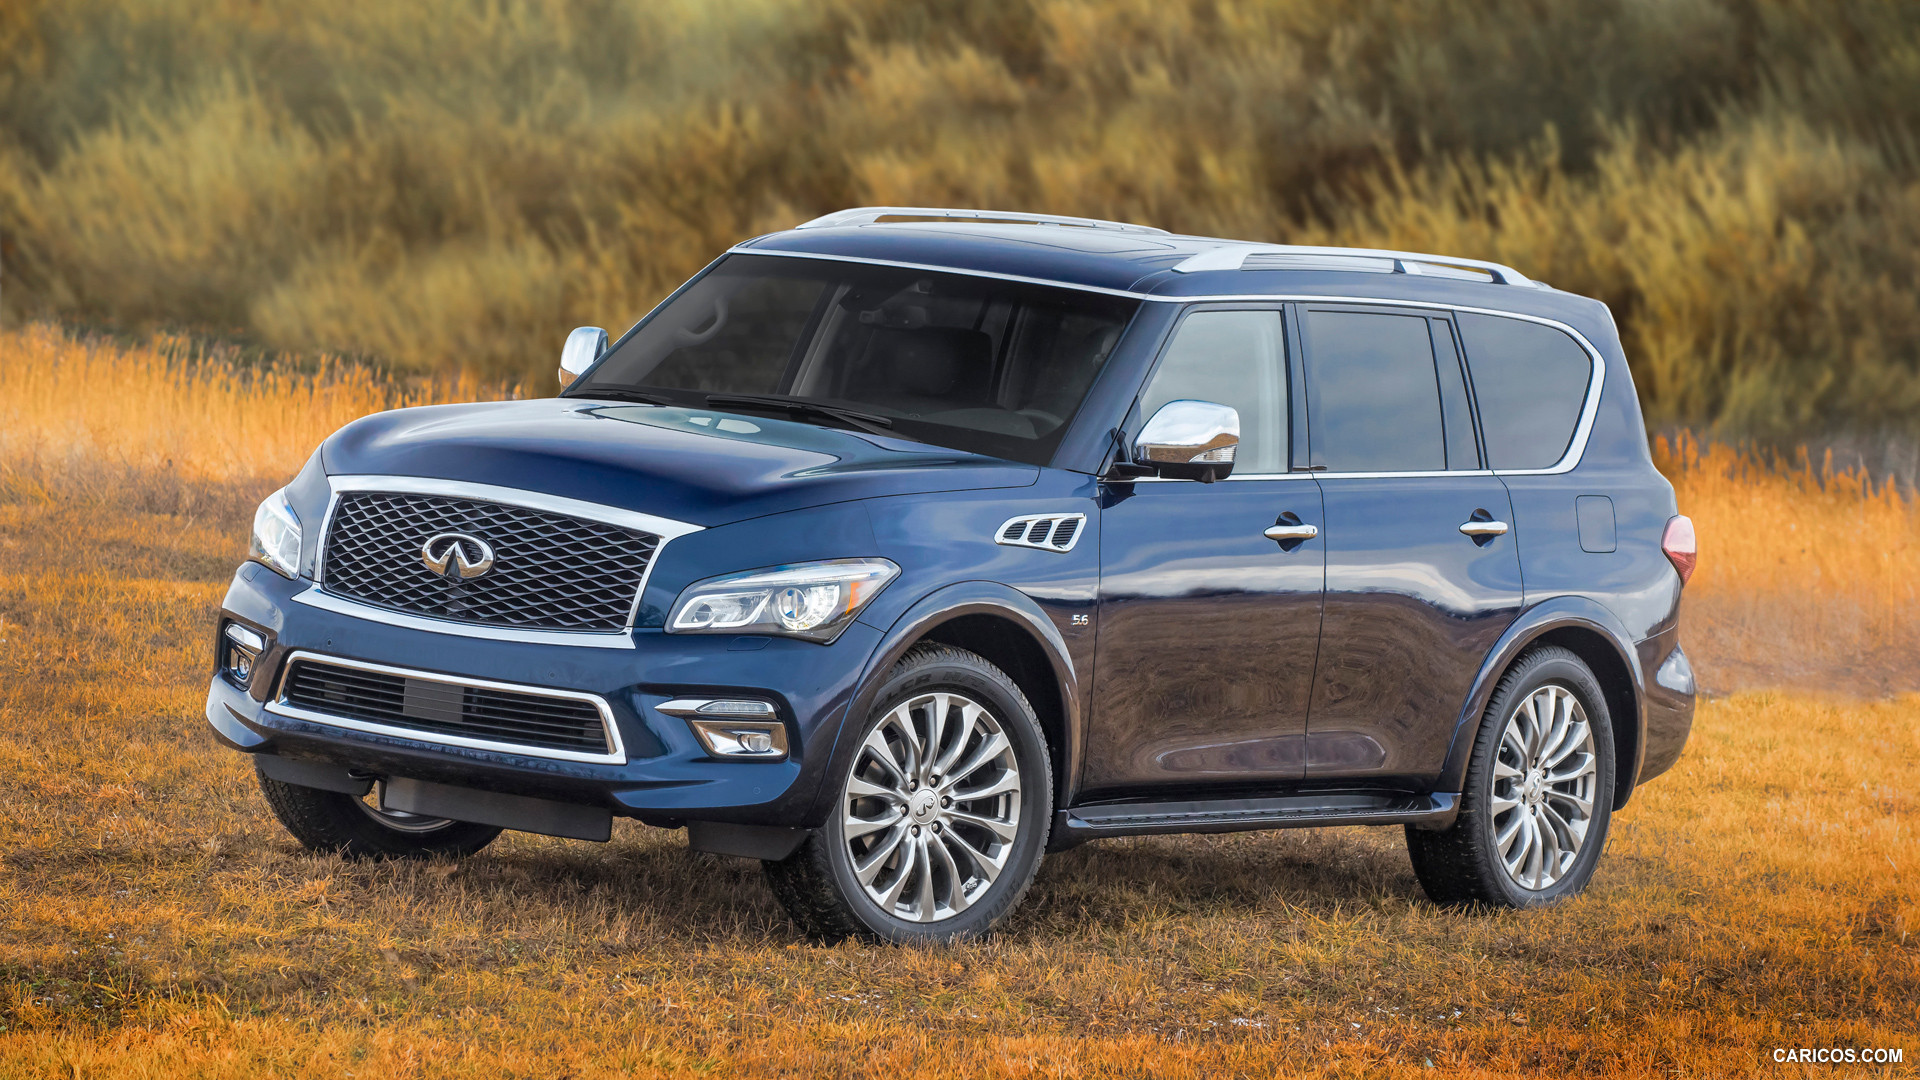 1920x1080 - Infiniti QX80 Wallpapers 8